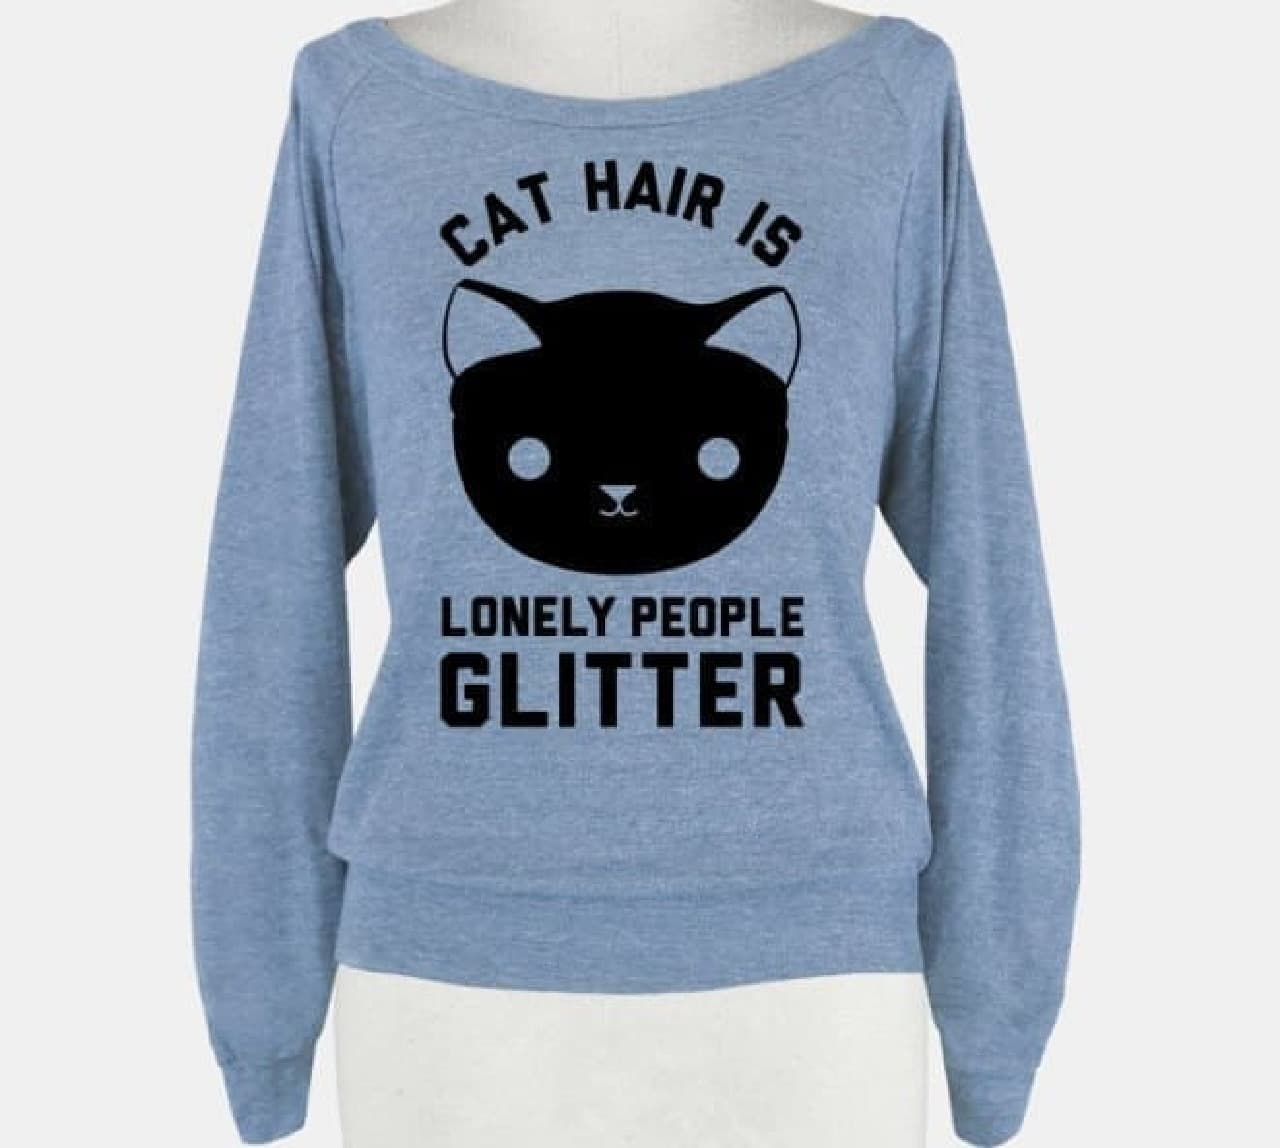 「Cat hair is lonely people glitter」Tシャツ  彼氏・彼女いませんけど、なにか?